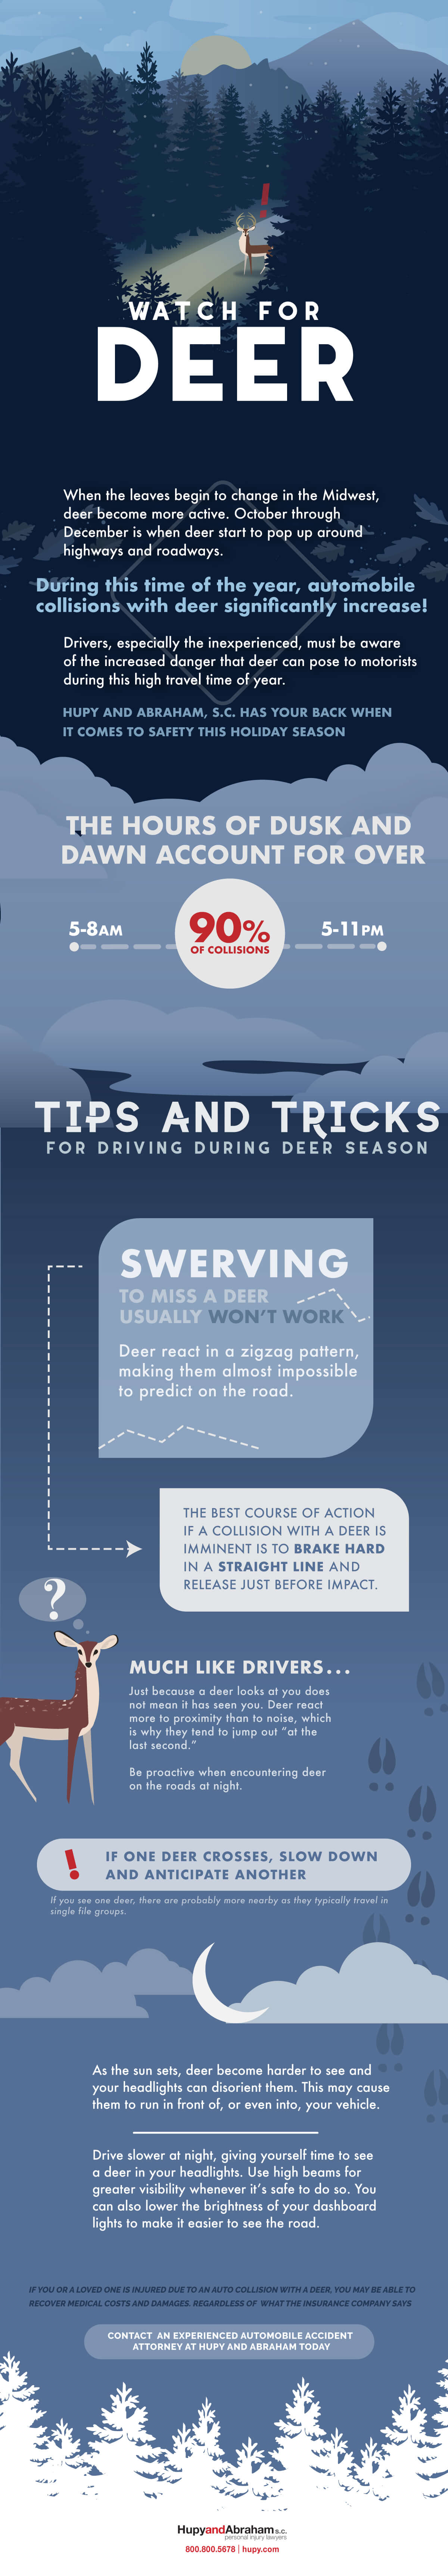 Save this deer safety infographic! Watch for Deer!